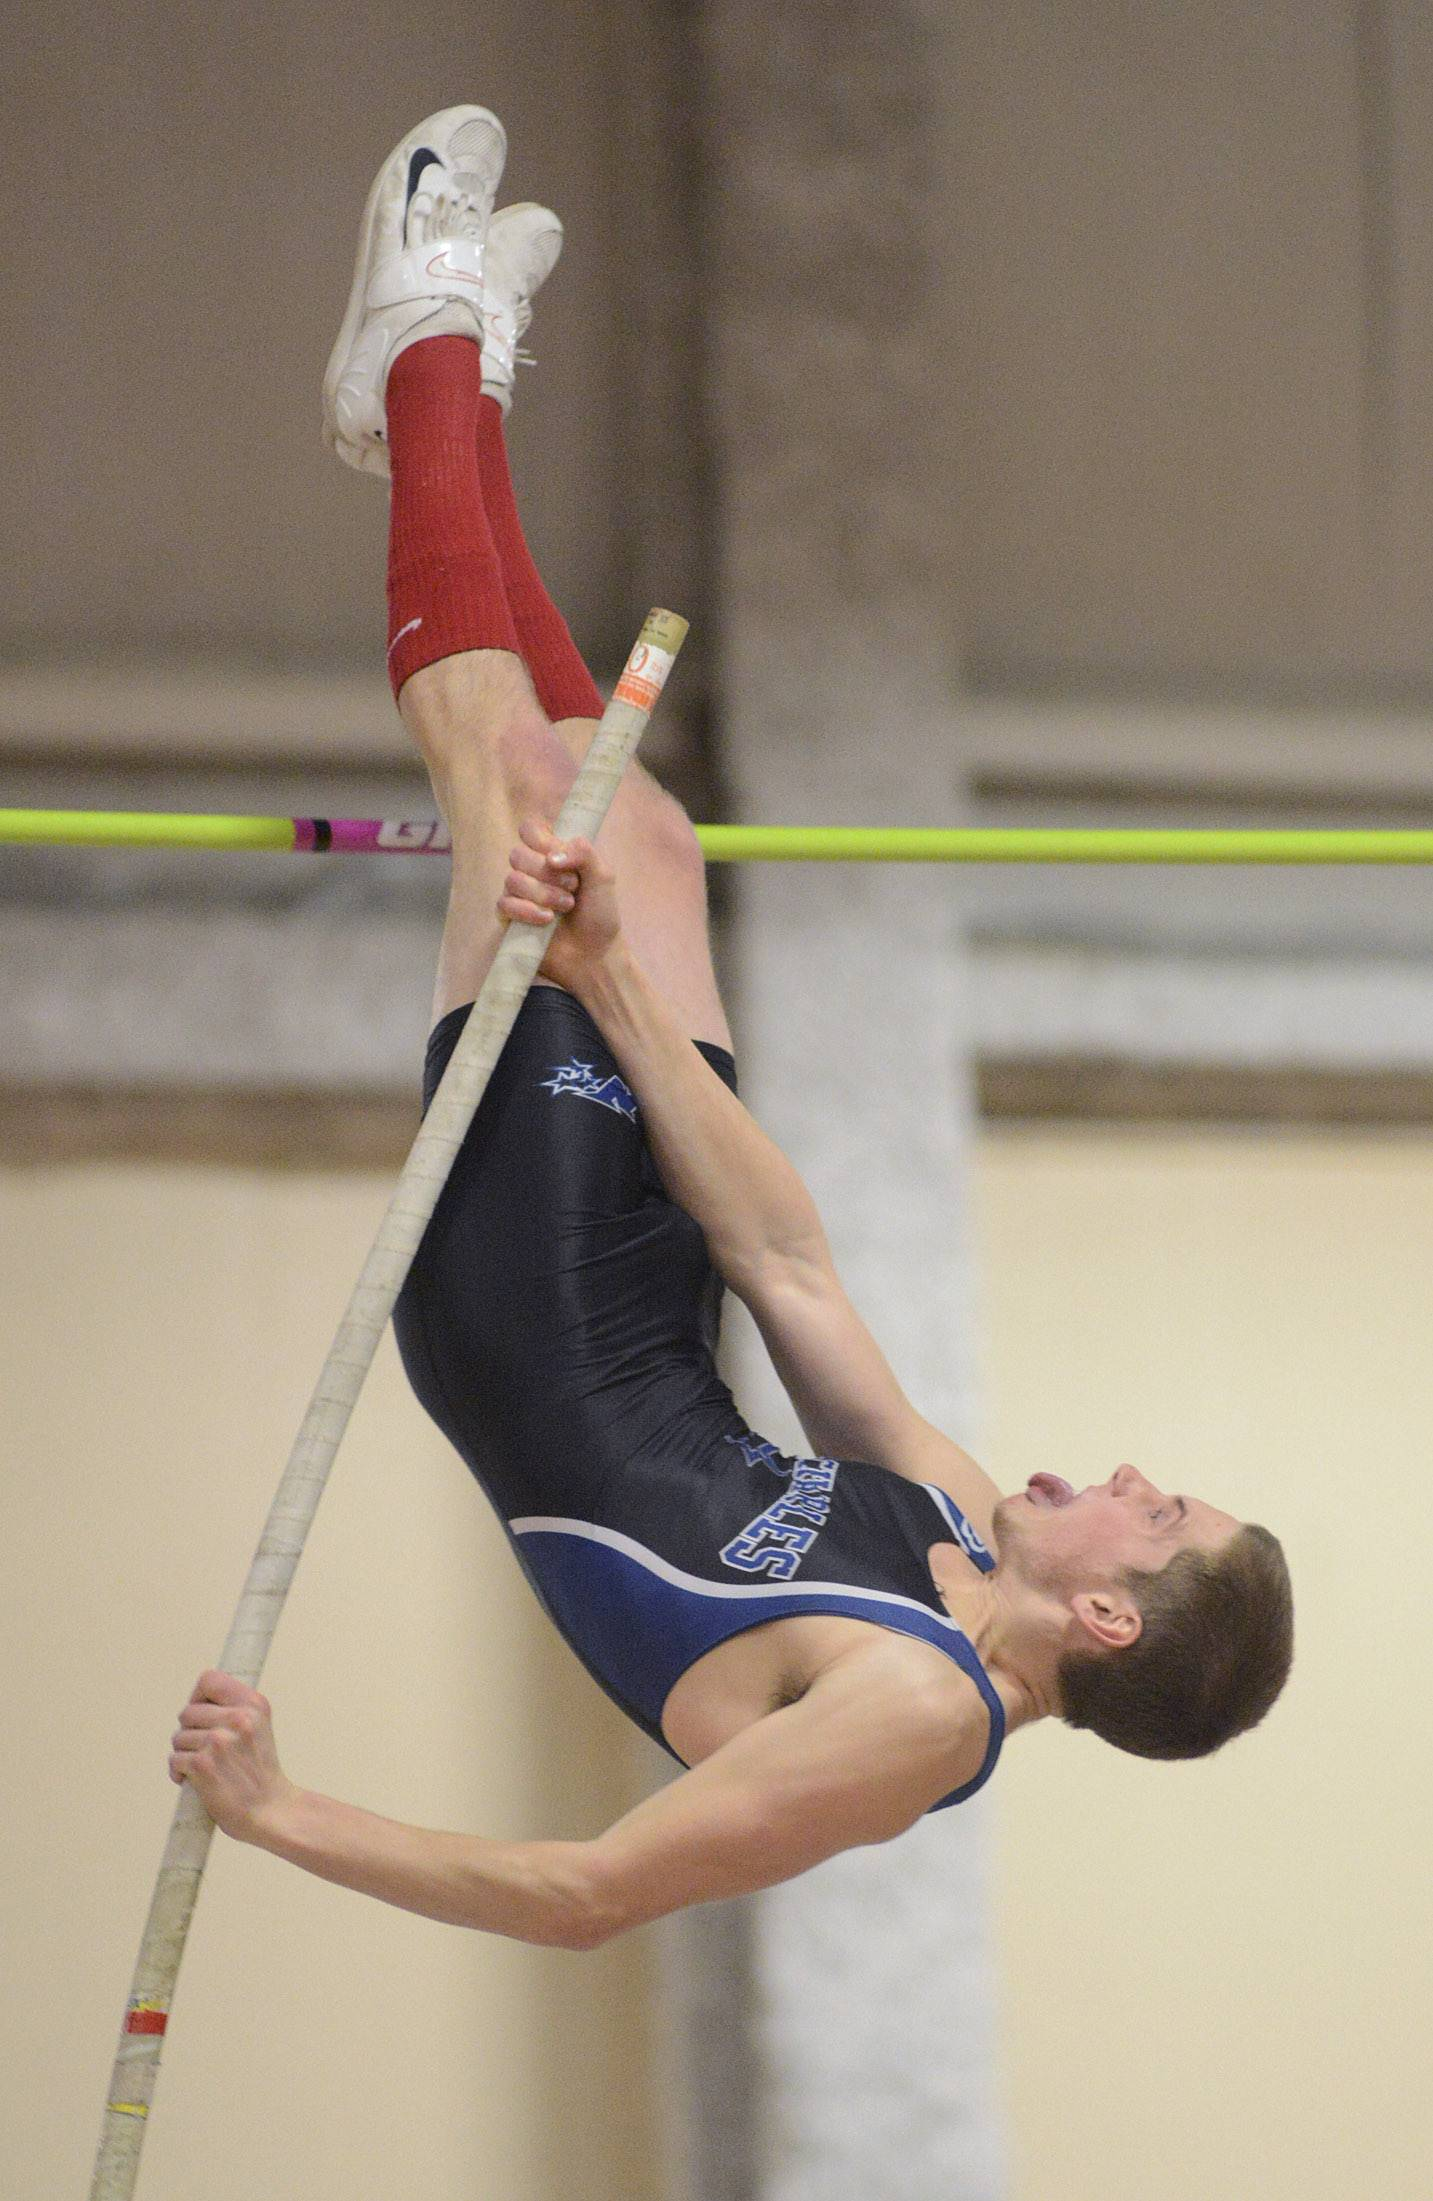 St. Charles North's Drew Egger in the pole vault at the Upstate Eight Conference in Batavia on Friday.